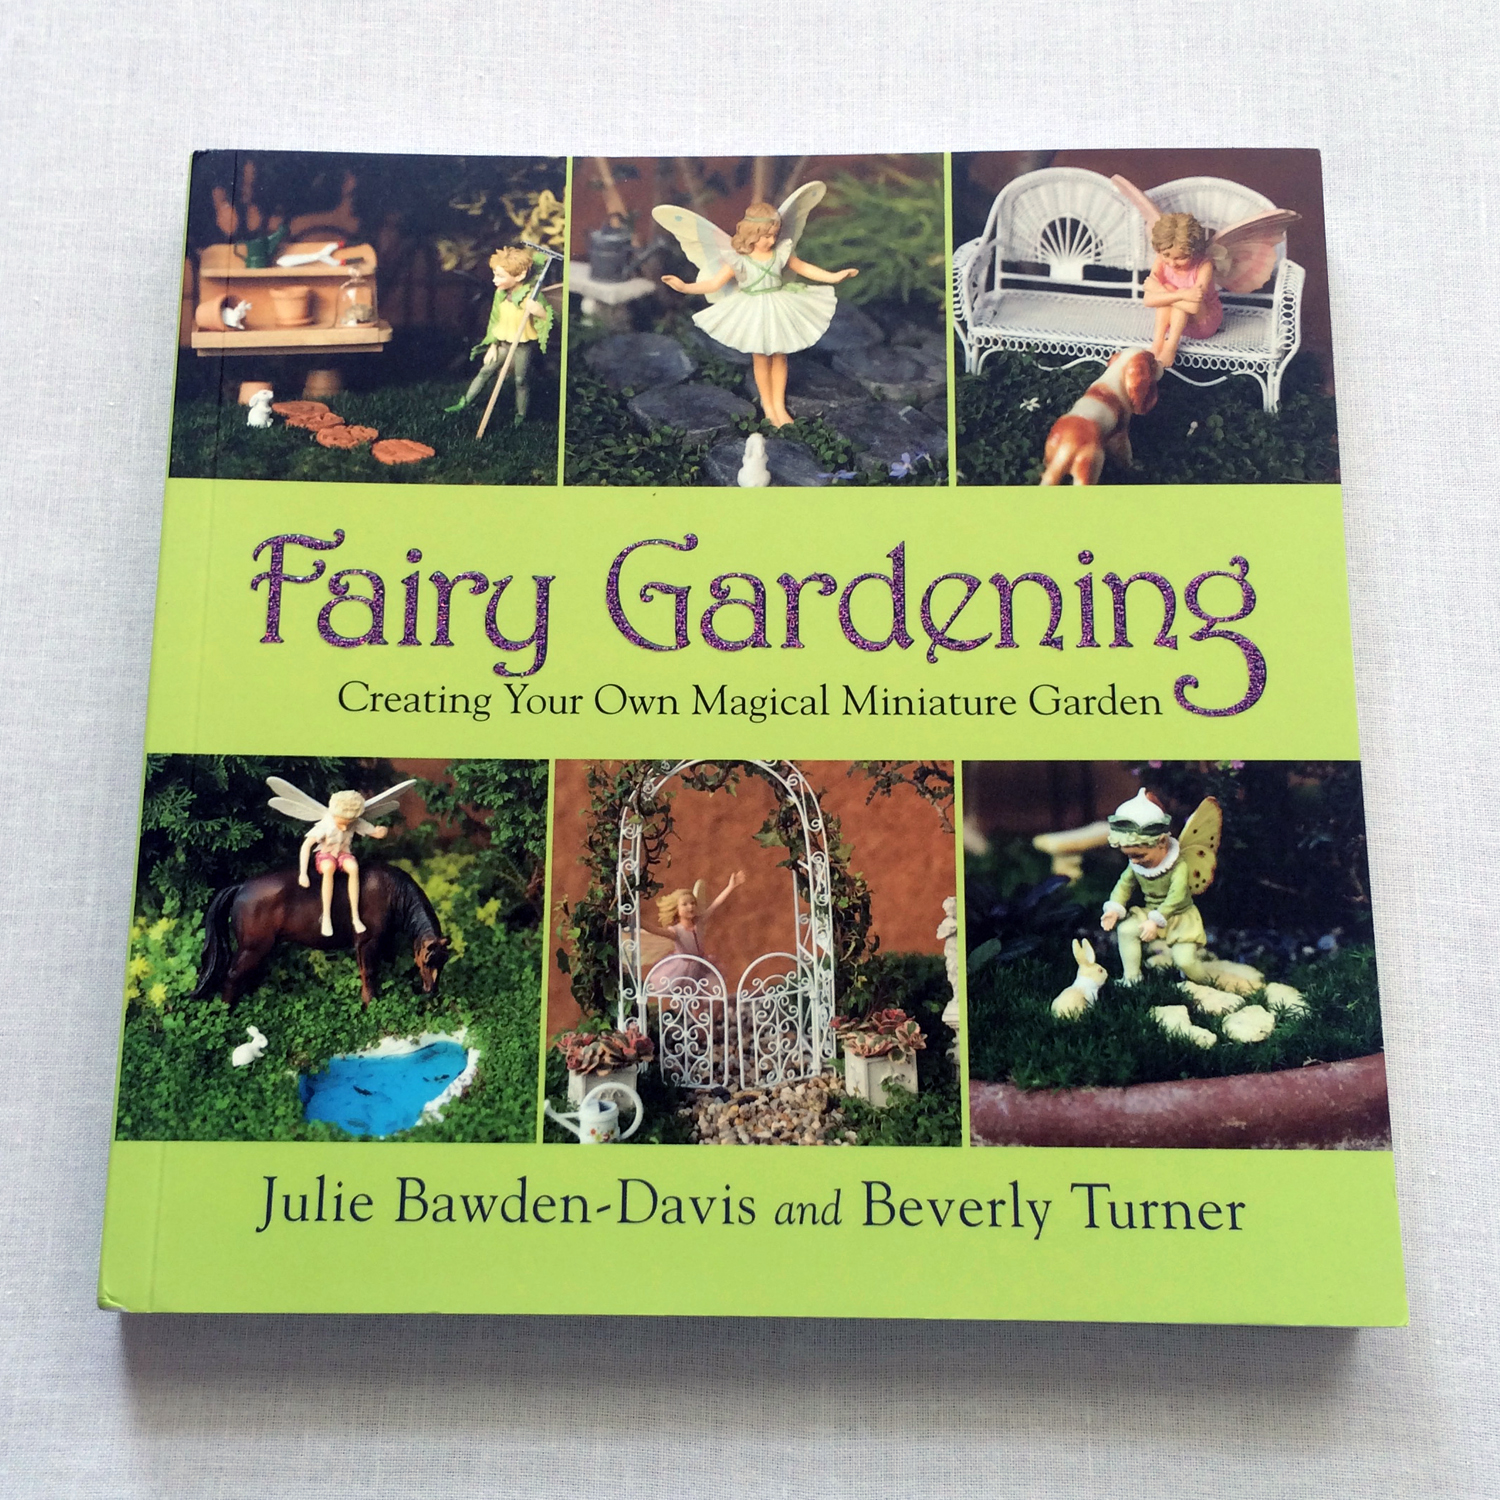 Julie And Beverly Outline The Seven Simple Steps To Make Your Own Miniature  Garden And Give Loads Of Tips And Tricks For Creating Focus, Movement, ...